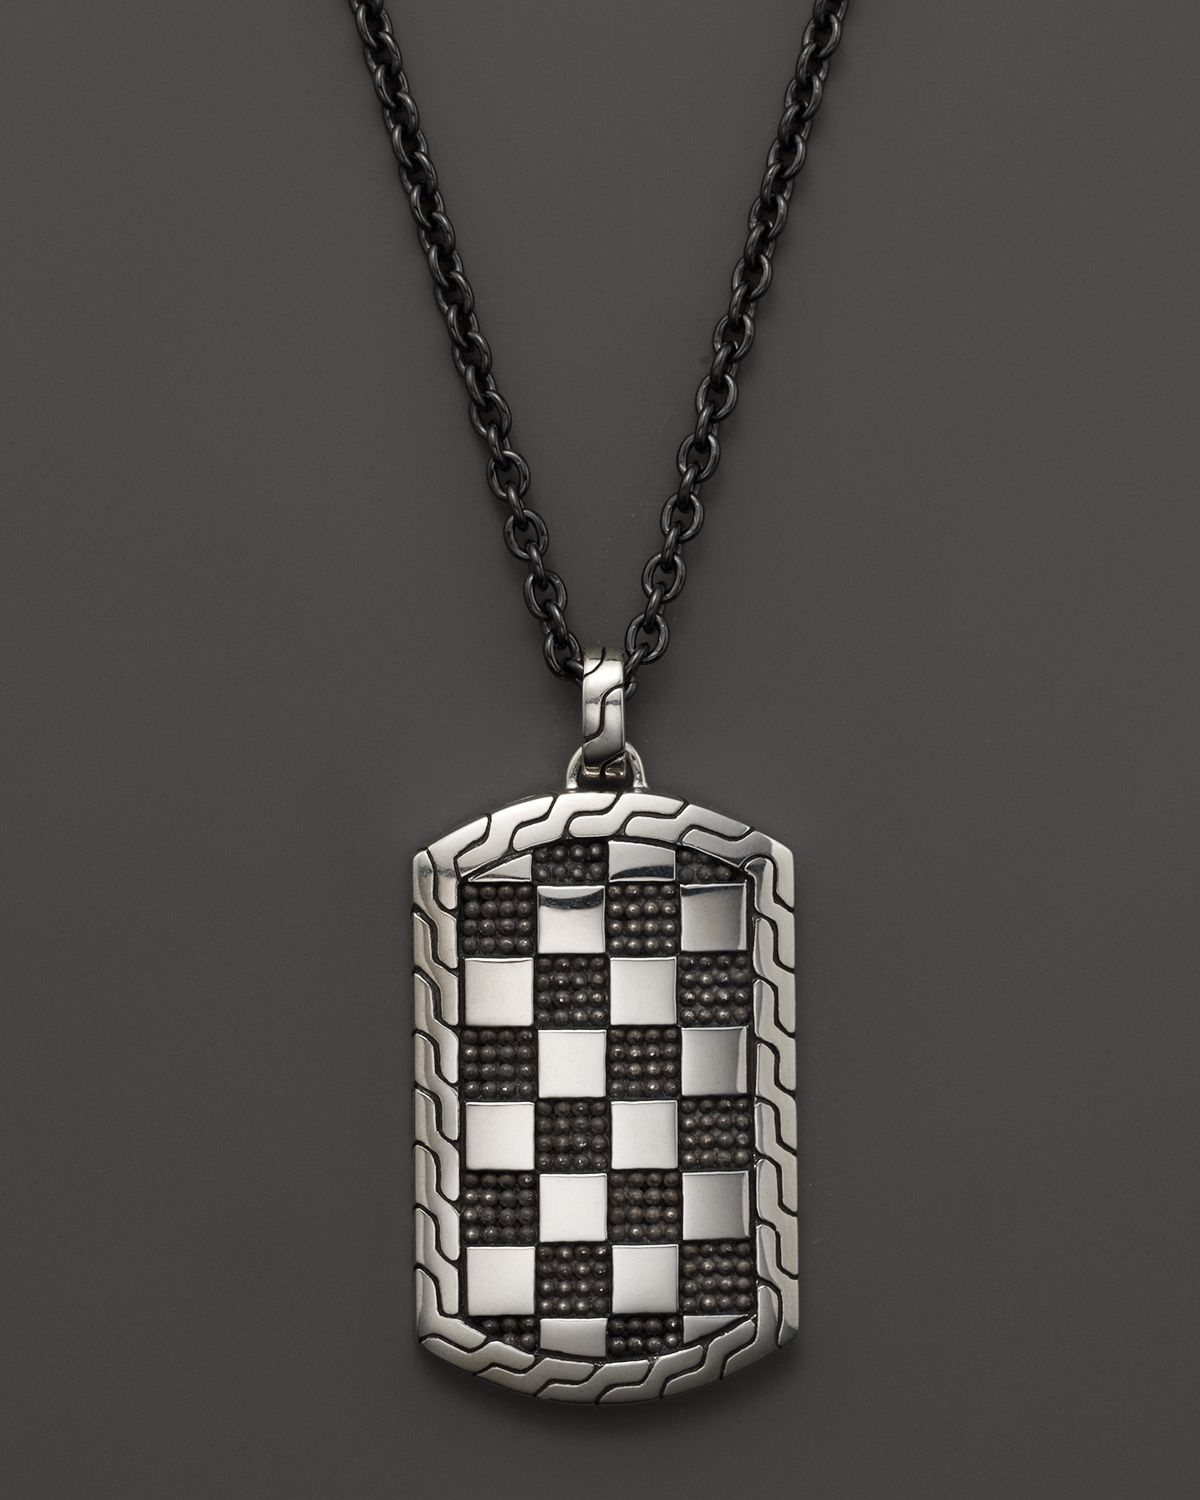 New Stainless Steel Zodiac Dog Tag Pendant Men S Women S: John Hardy Mens Classic Chain Poleng Silver Dog Tag